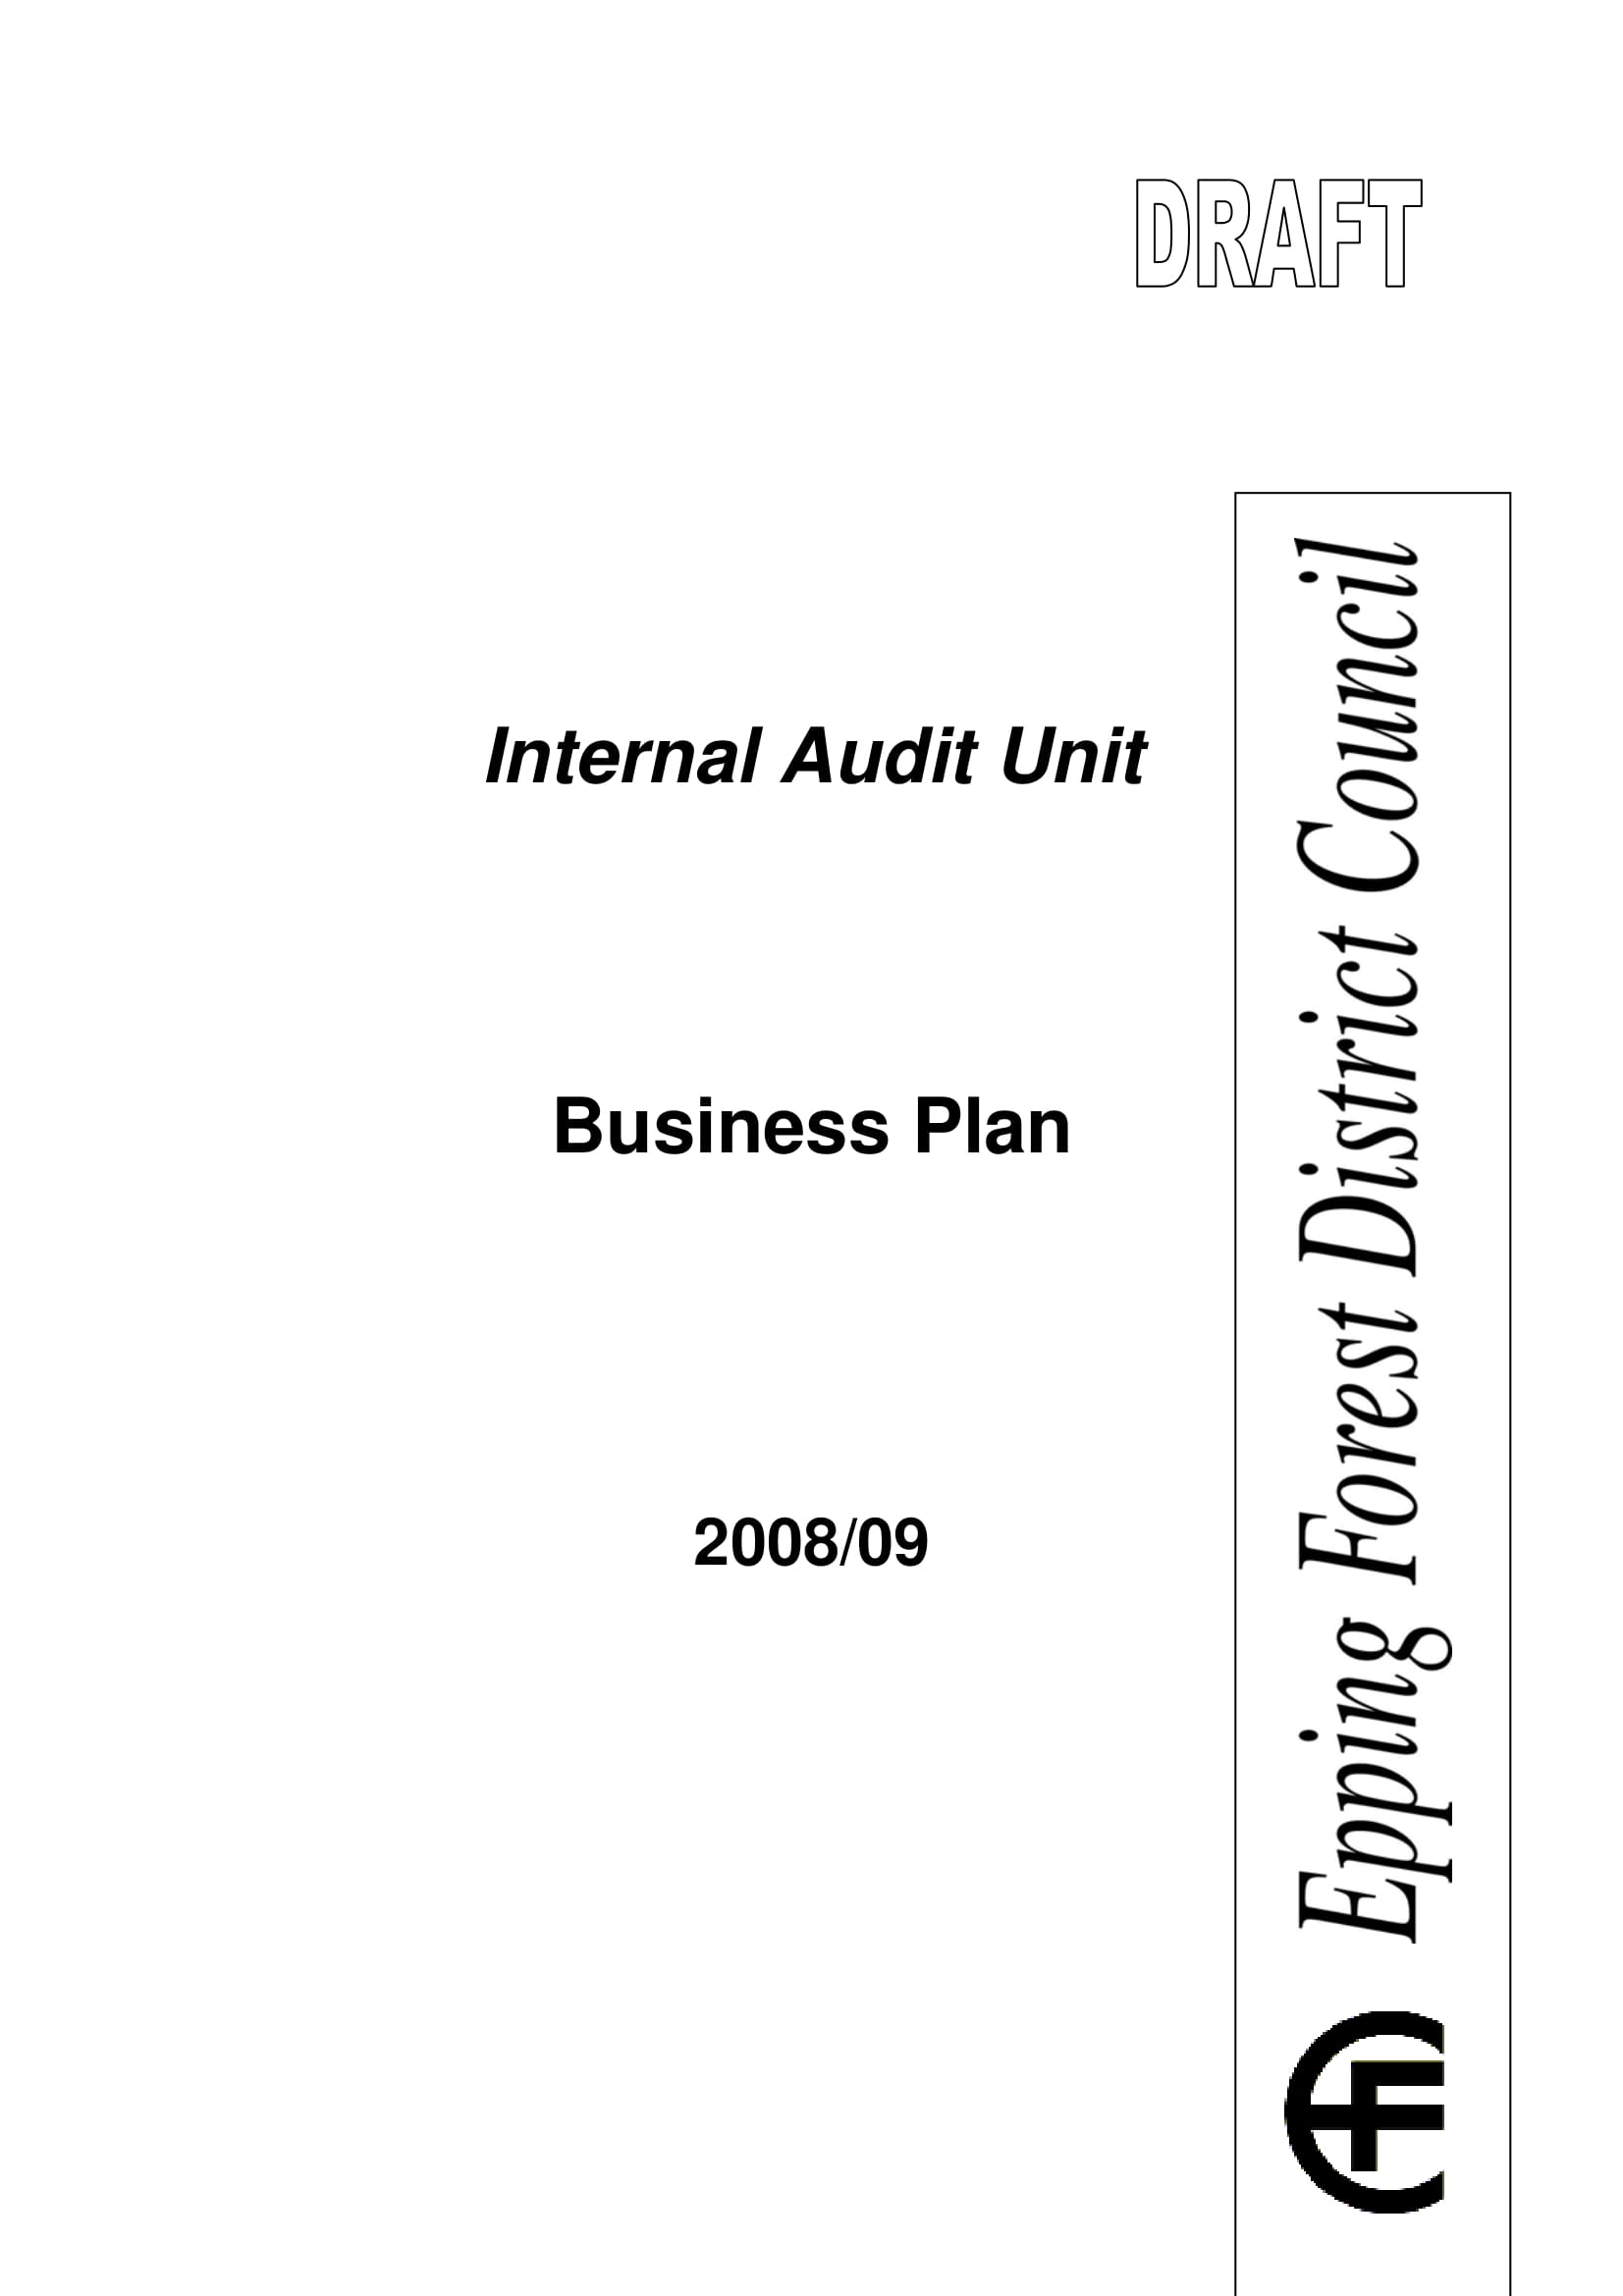 internal audit business plan and swot analysis example